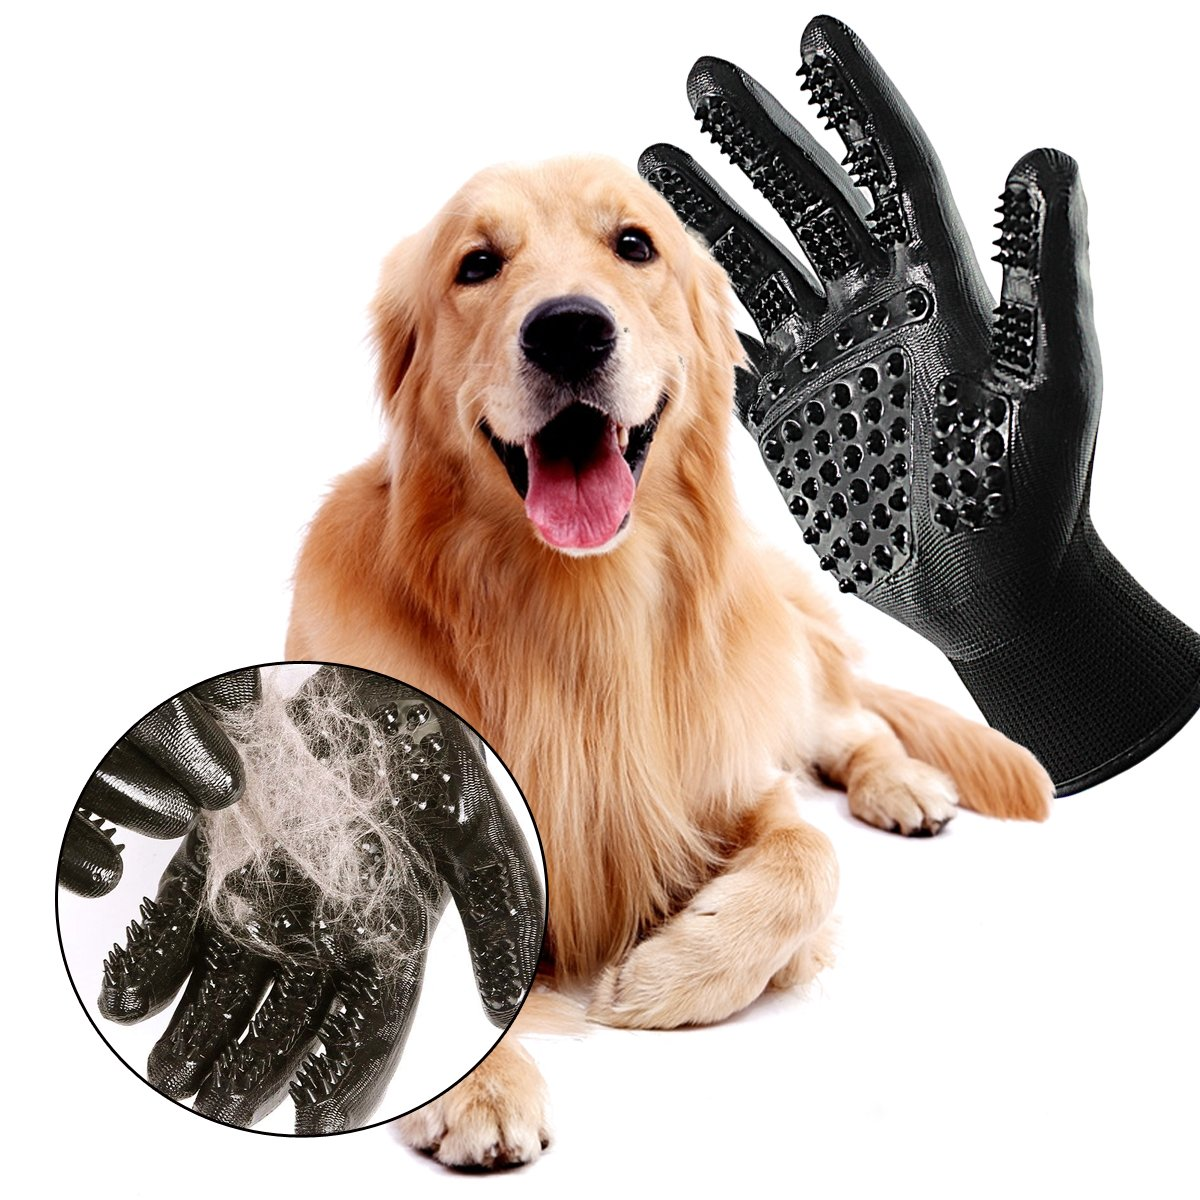 Swissdigital Pet Grooming Glove, Five Finger Deshedding Glove Brush Gloves for Dogs Cats Horses Grooming Tool Furniture Pet Hair Rmover Mitt, One Pair,Black